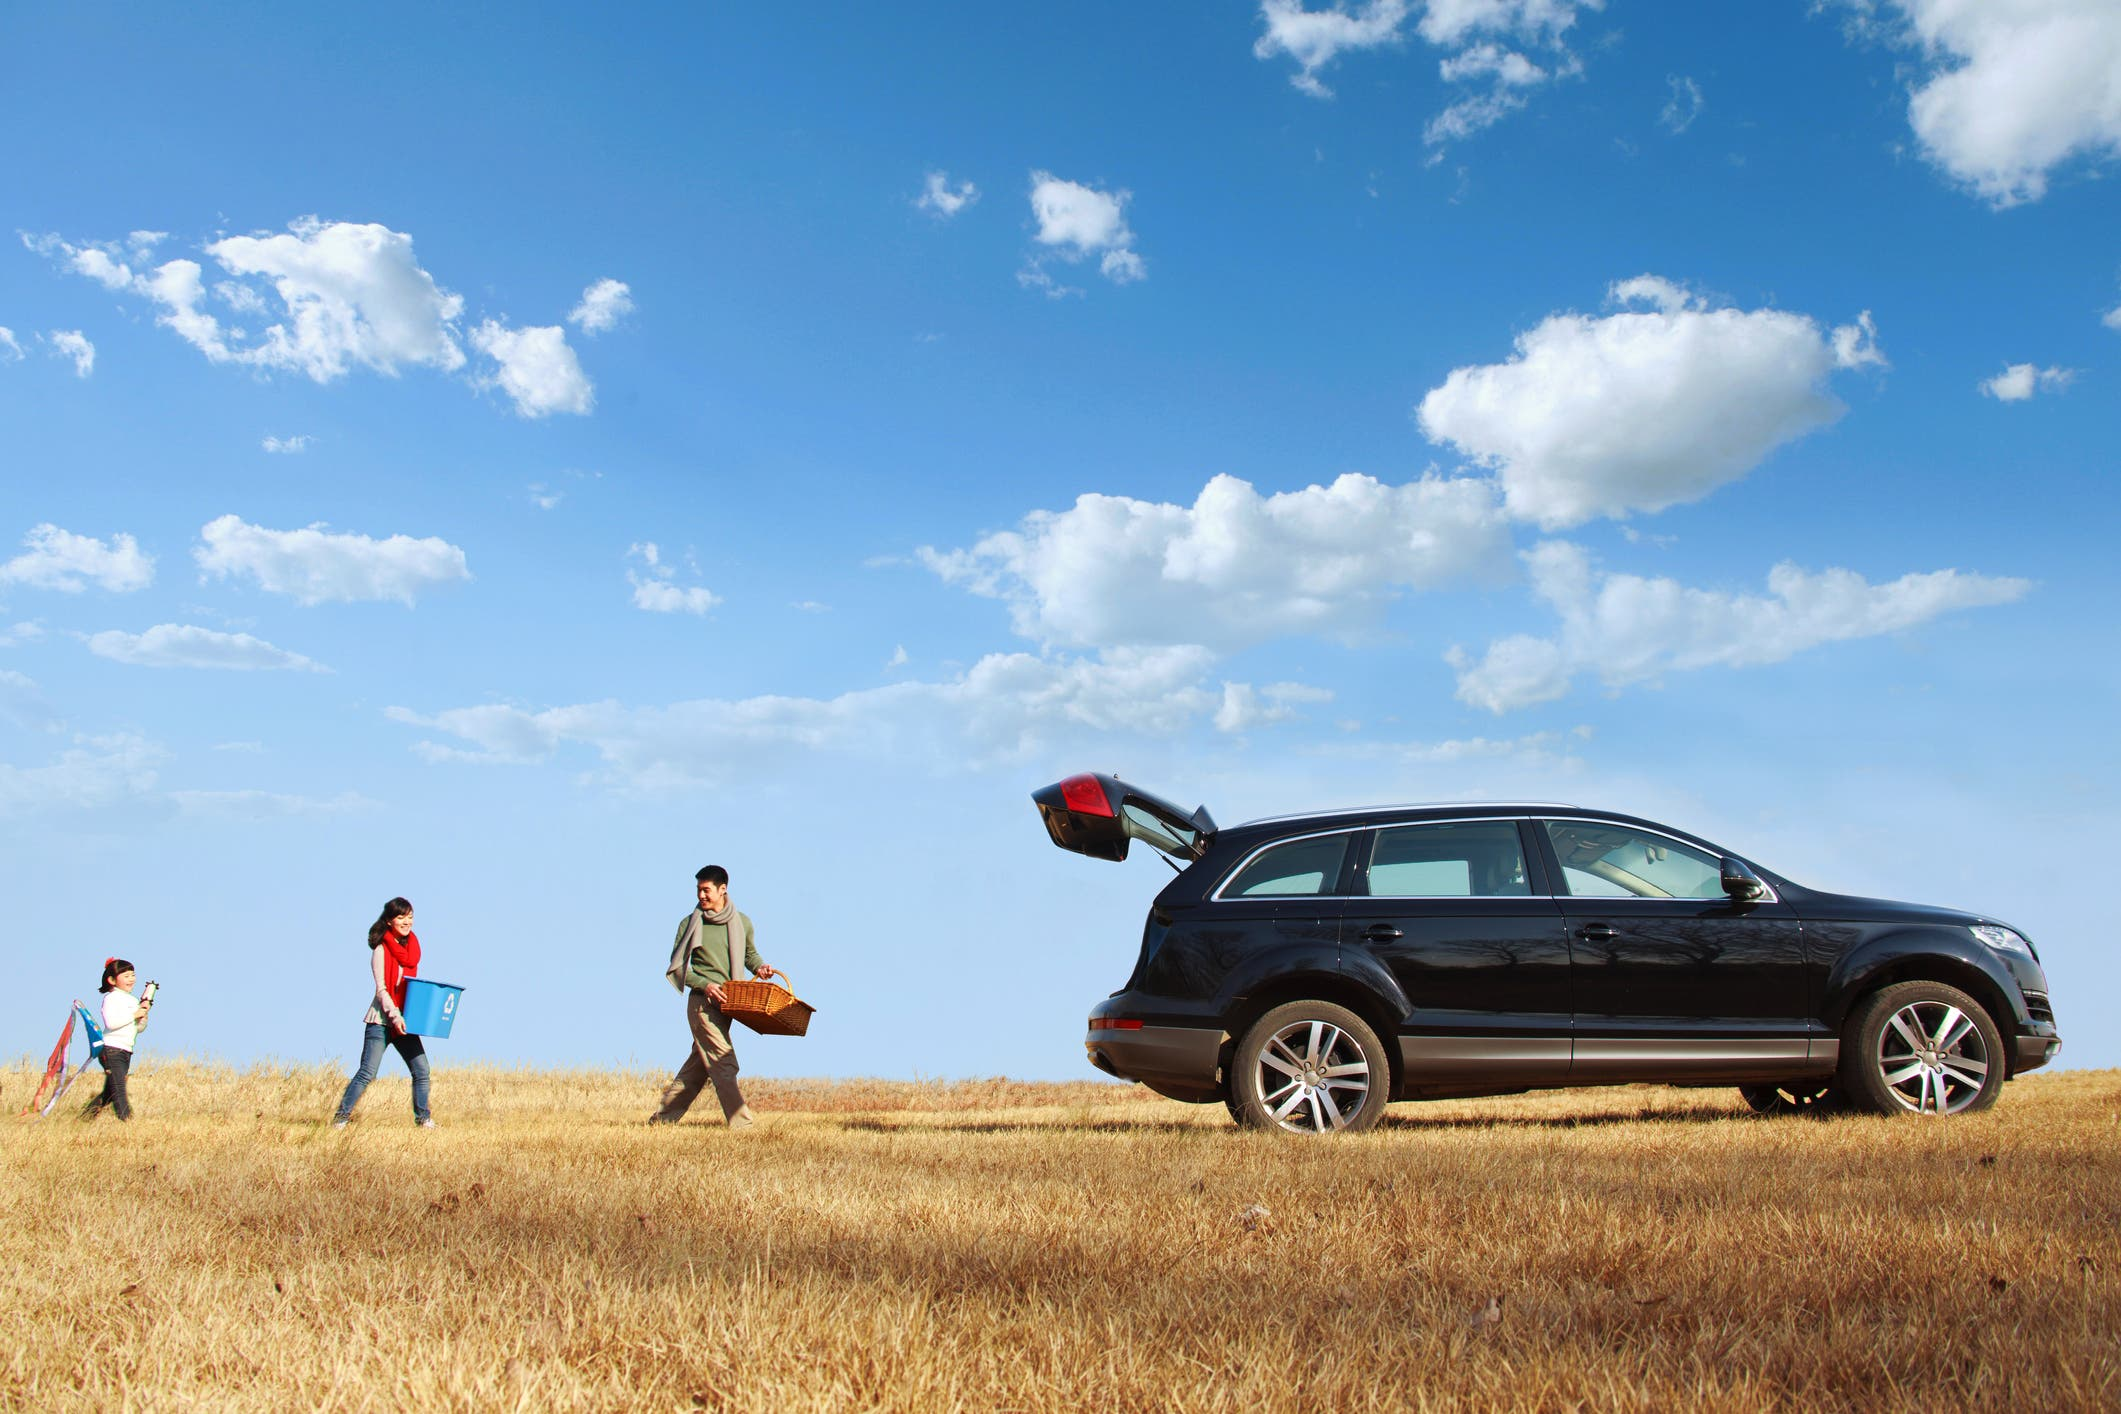 family in a field, car